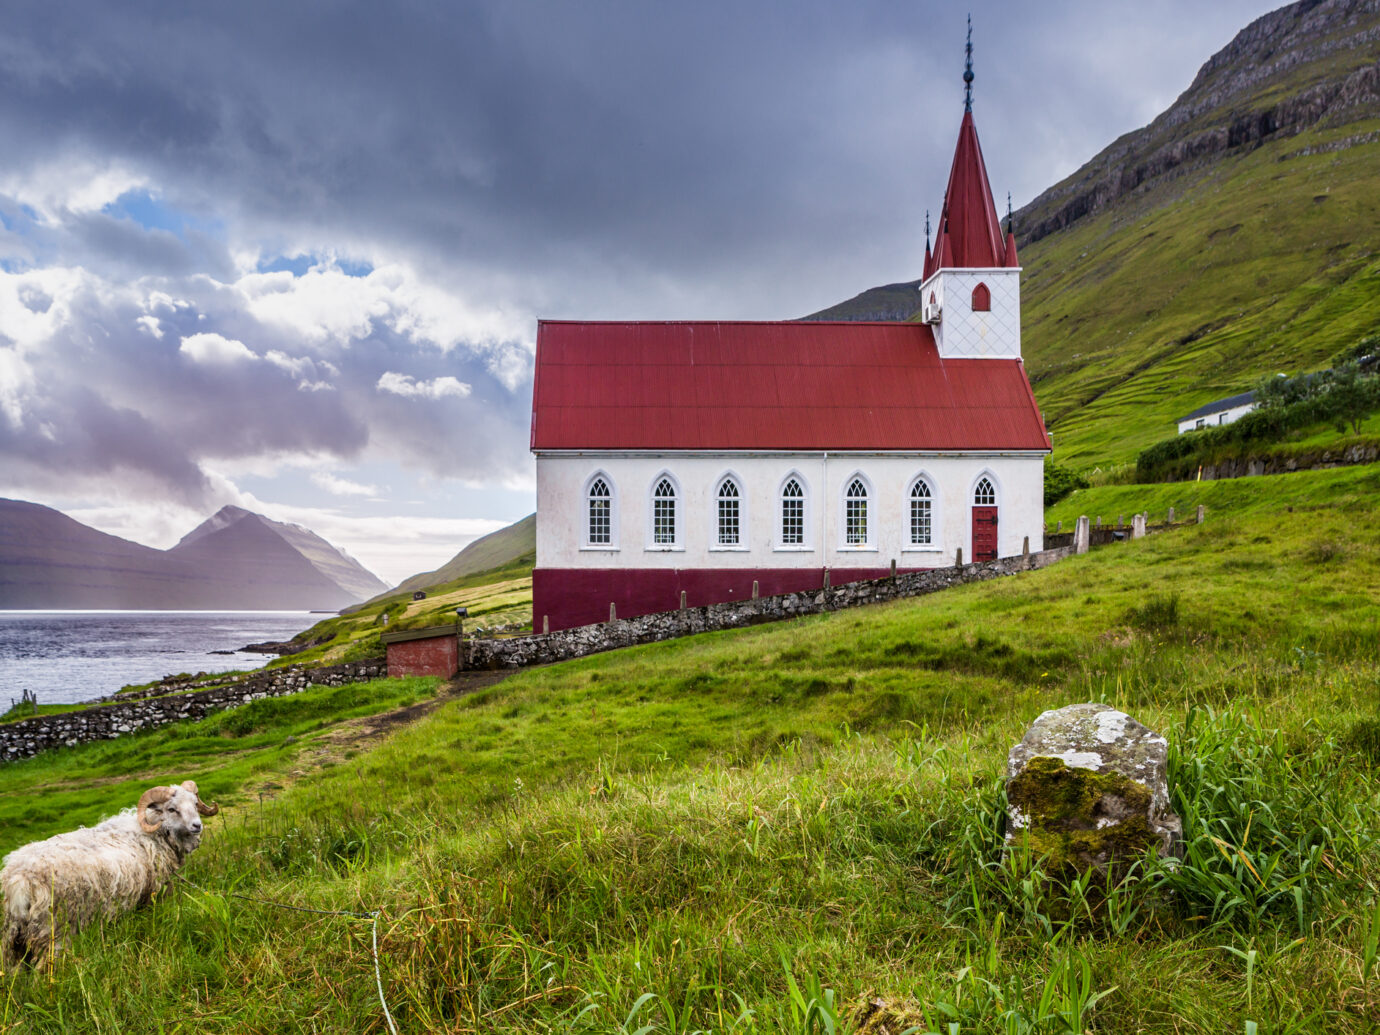 Kalsoy church in Faroe Islands whit sheep